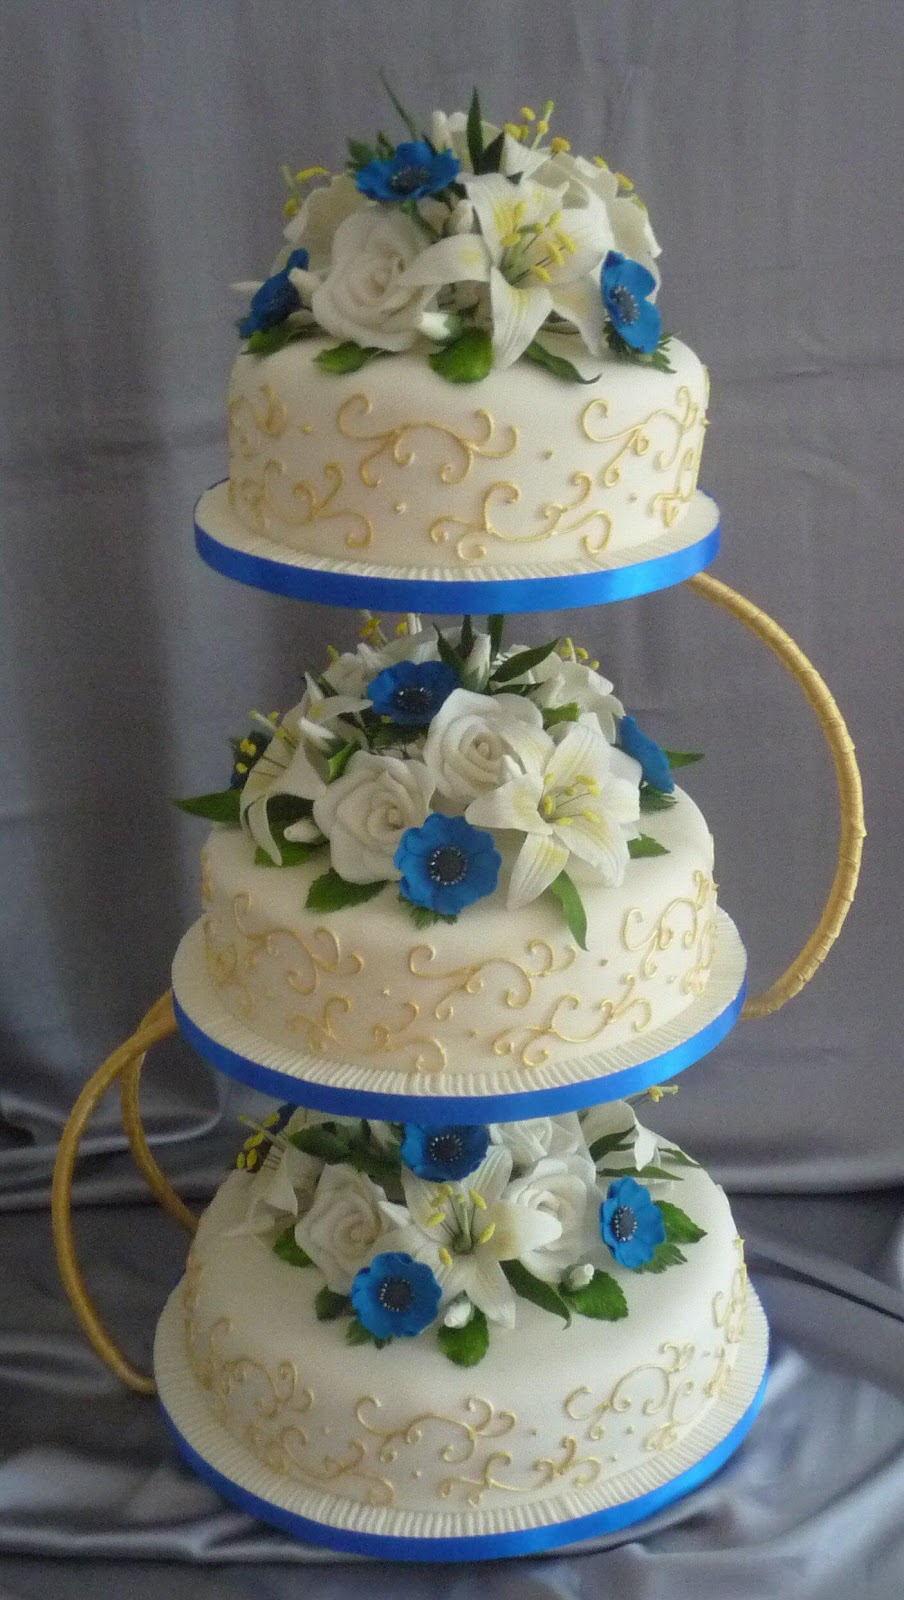 wedding cakes by franziska: blue and gold wedding cake design